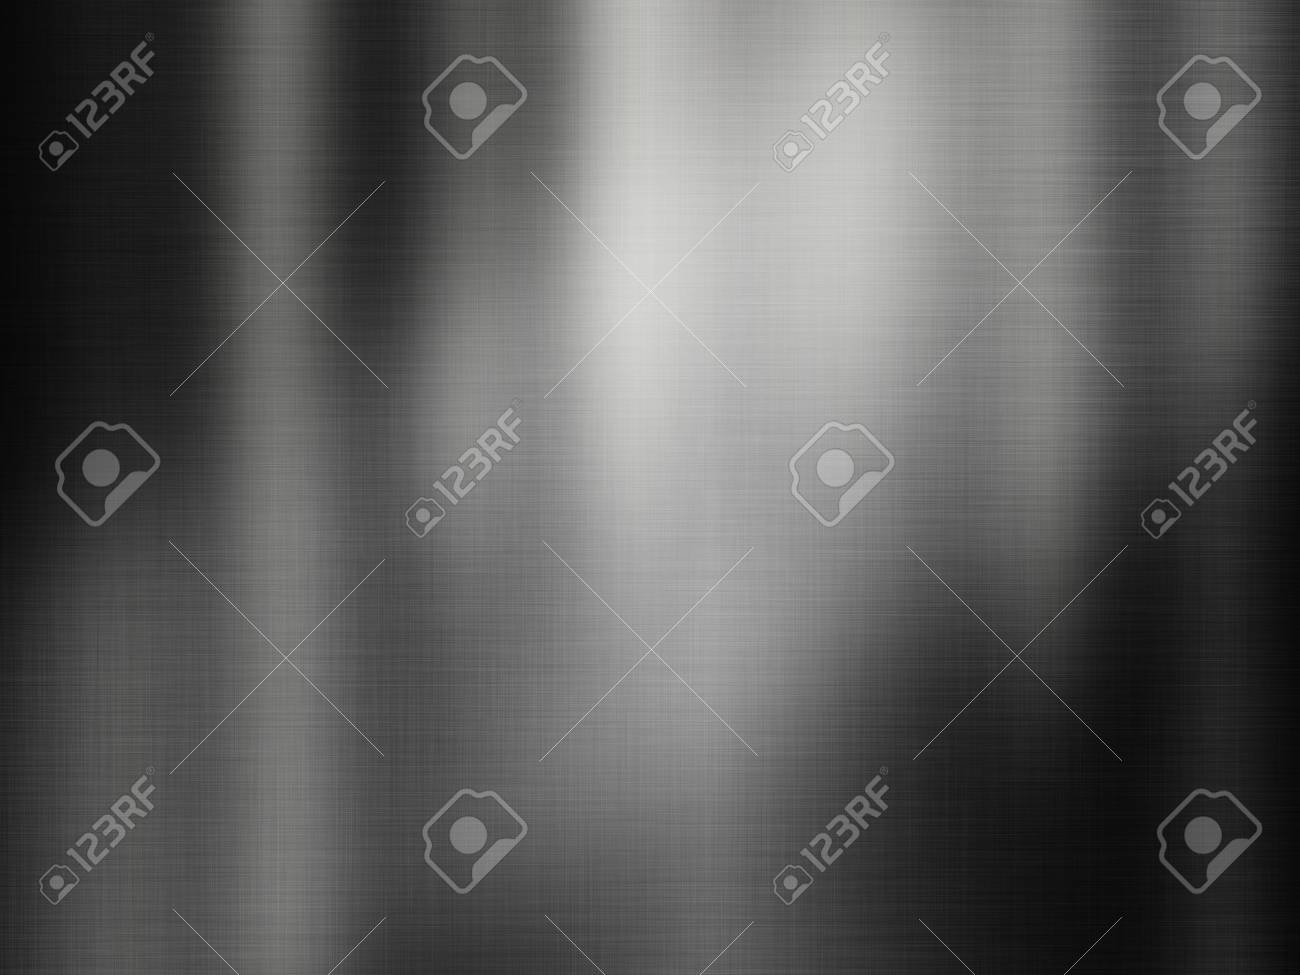 Stainless steel texture or metal texture background Banque d'images - 75076727